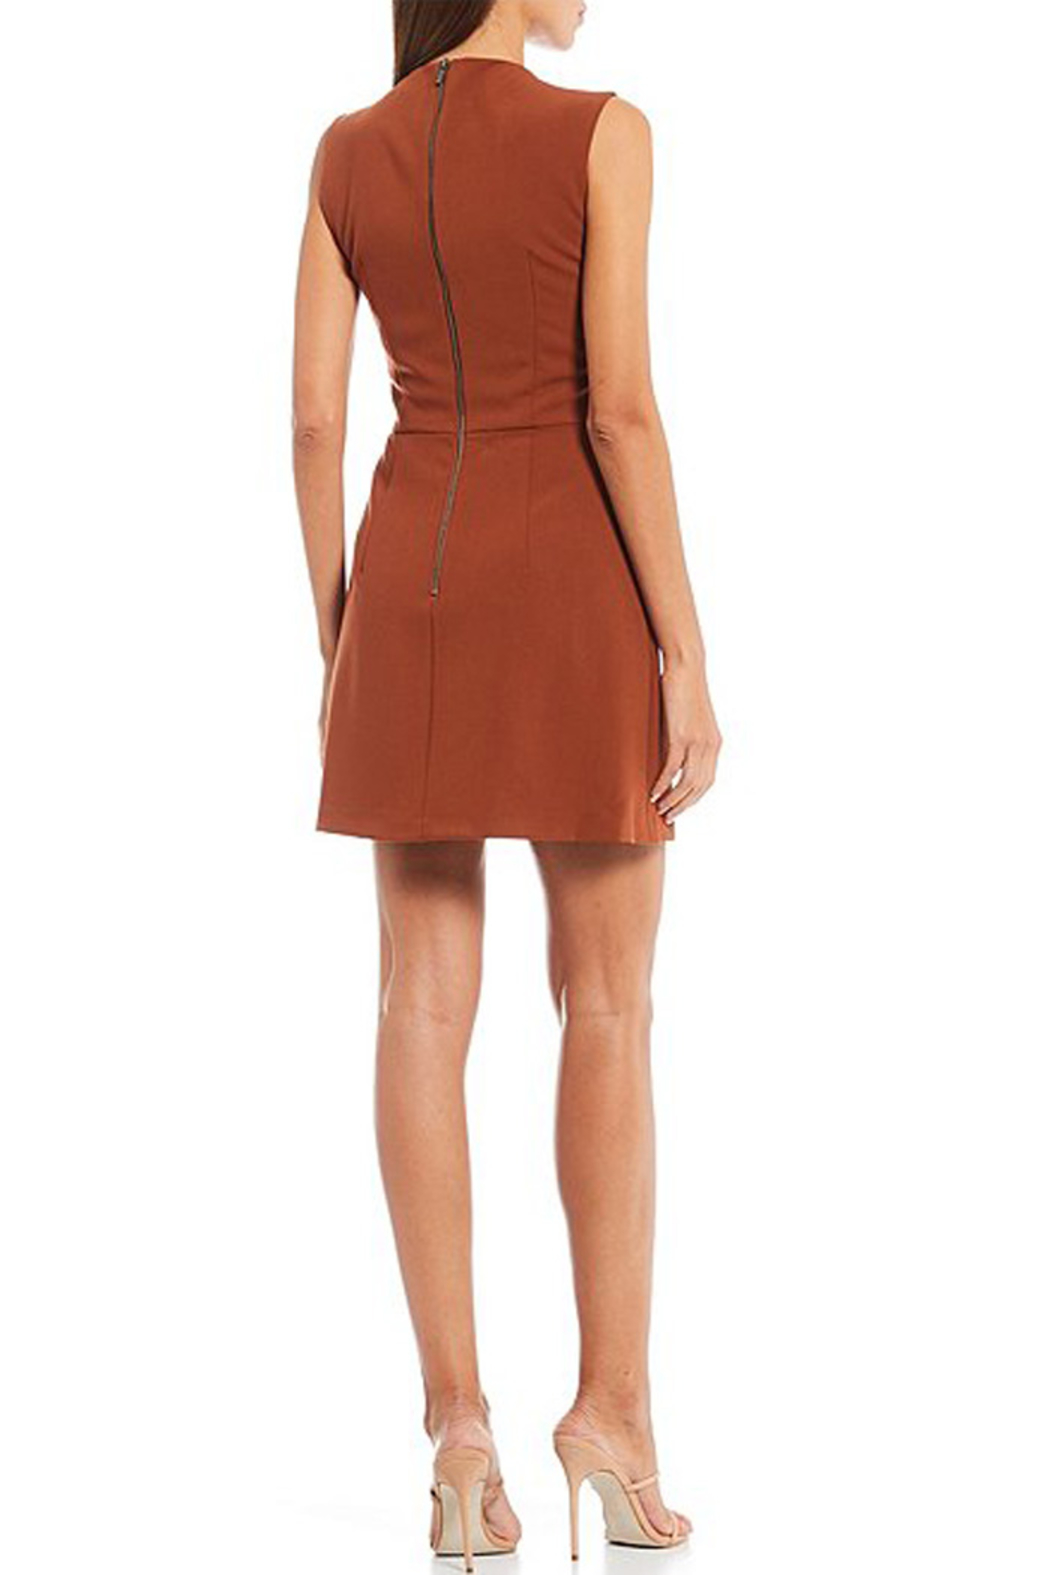 French Connection SLEEVELESS SHEATH DRESS - Front Full Image